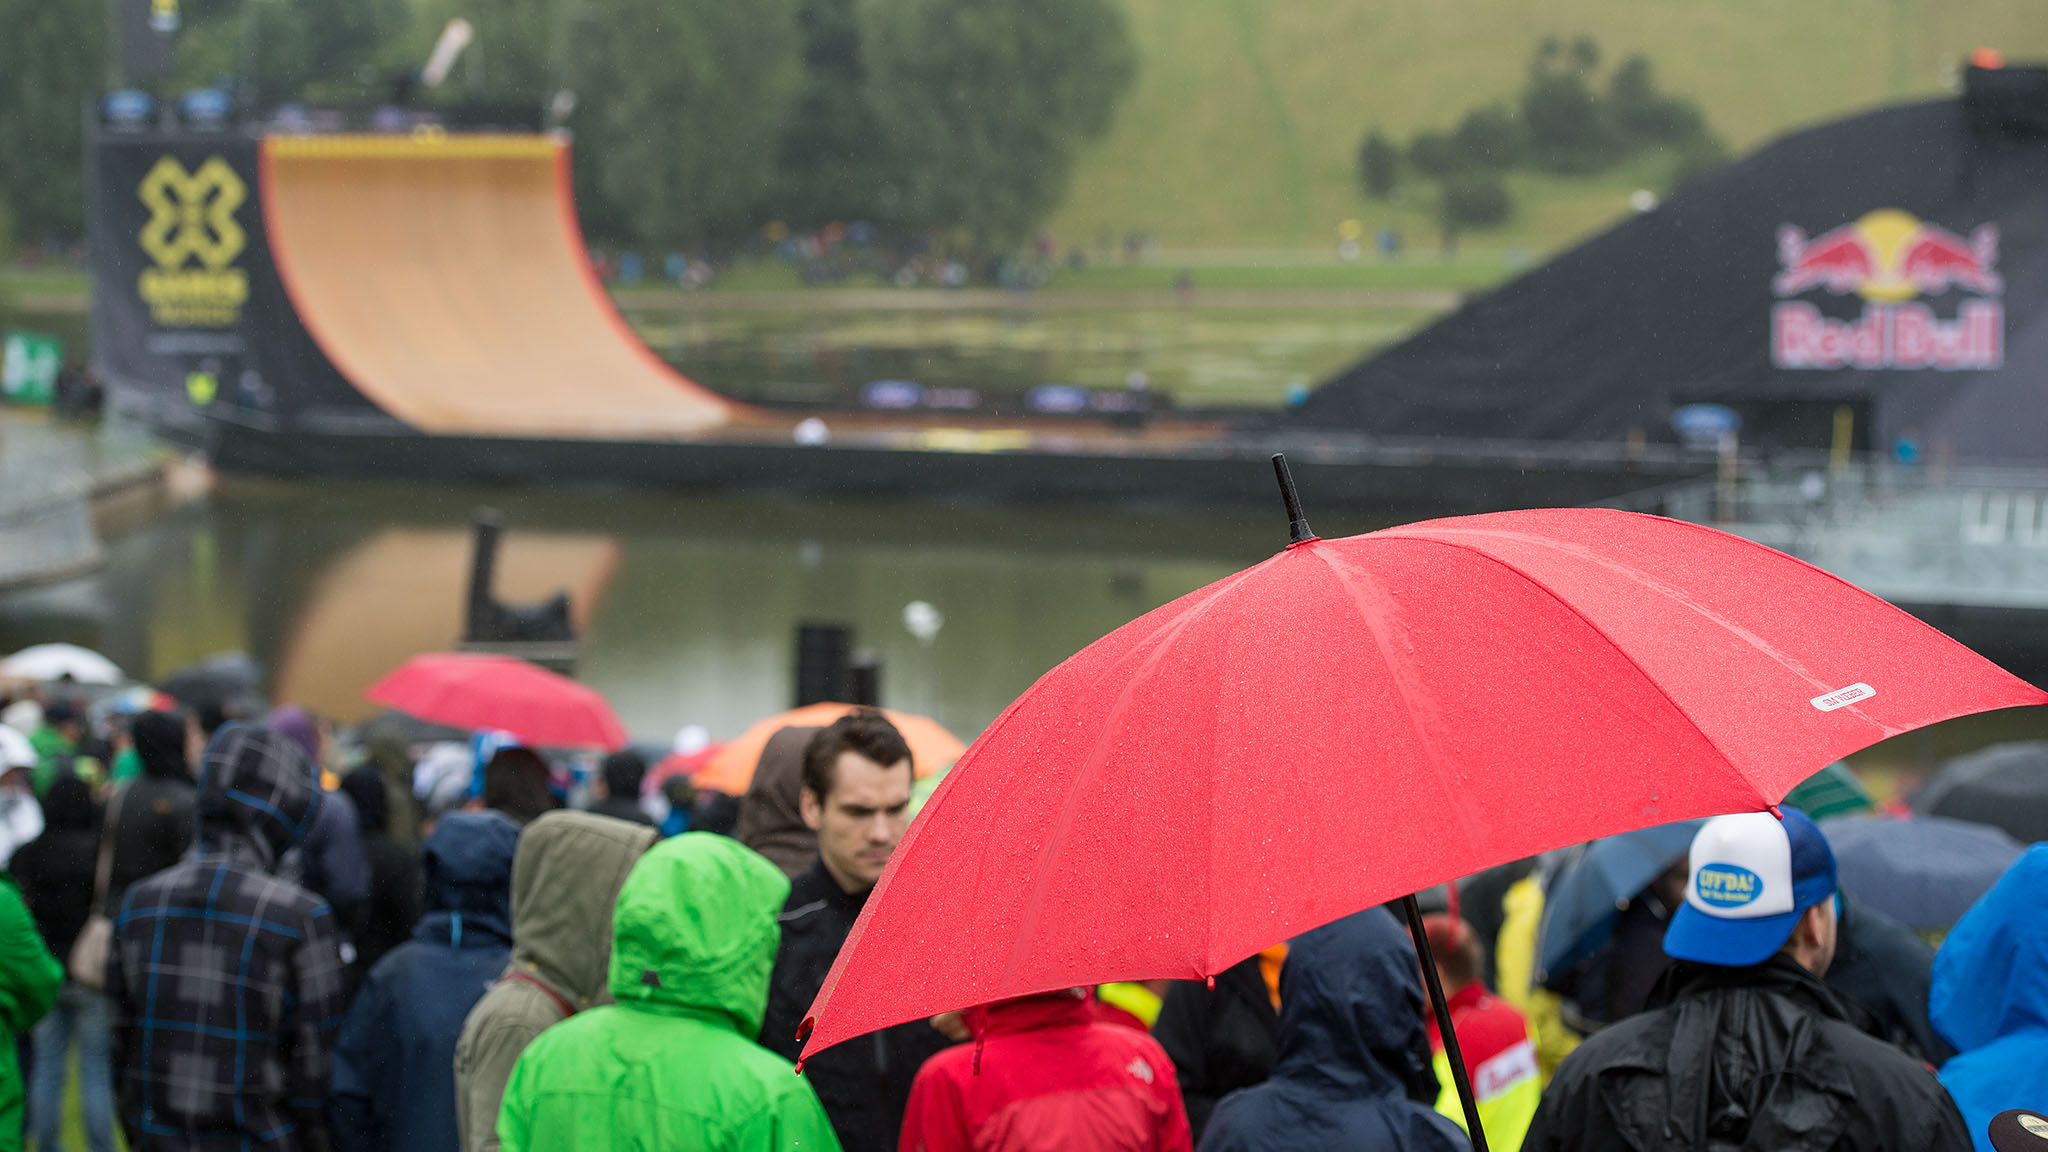 Spectators wait for the start of Skateboard Big Air near the MegaRamp at X Games Munich. Rain and inclement weather forced organizers to postpone the event until Sunday, June 30, setting up an action-packed day for spectators that will also include the finals in Enduro X, Mountain Bike Slopestyle and Street League as well as a RallyCross race.